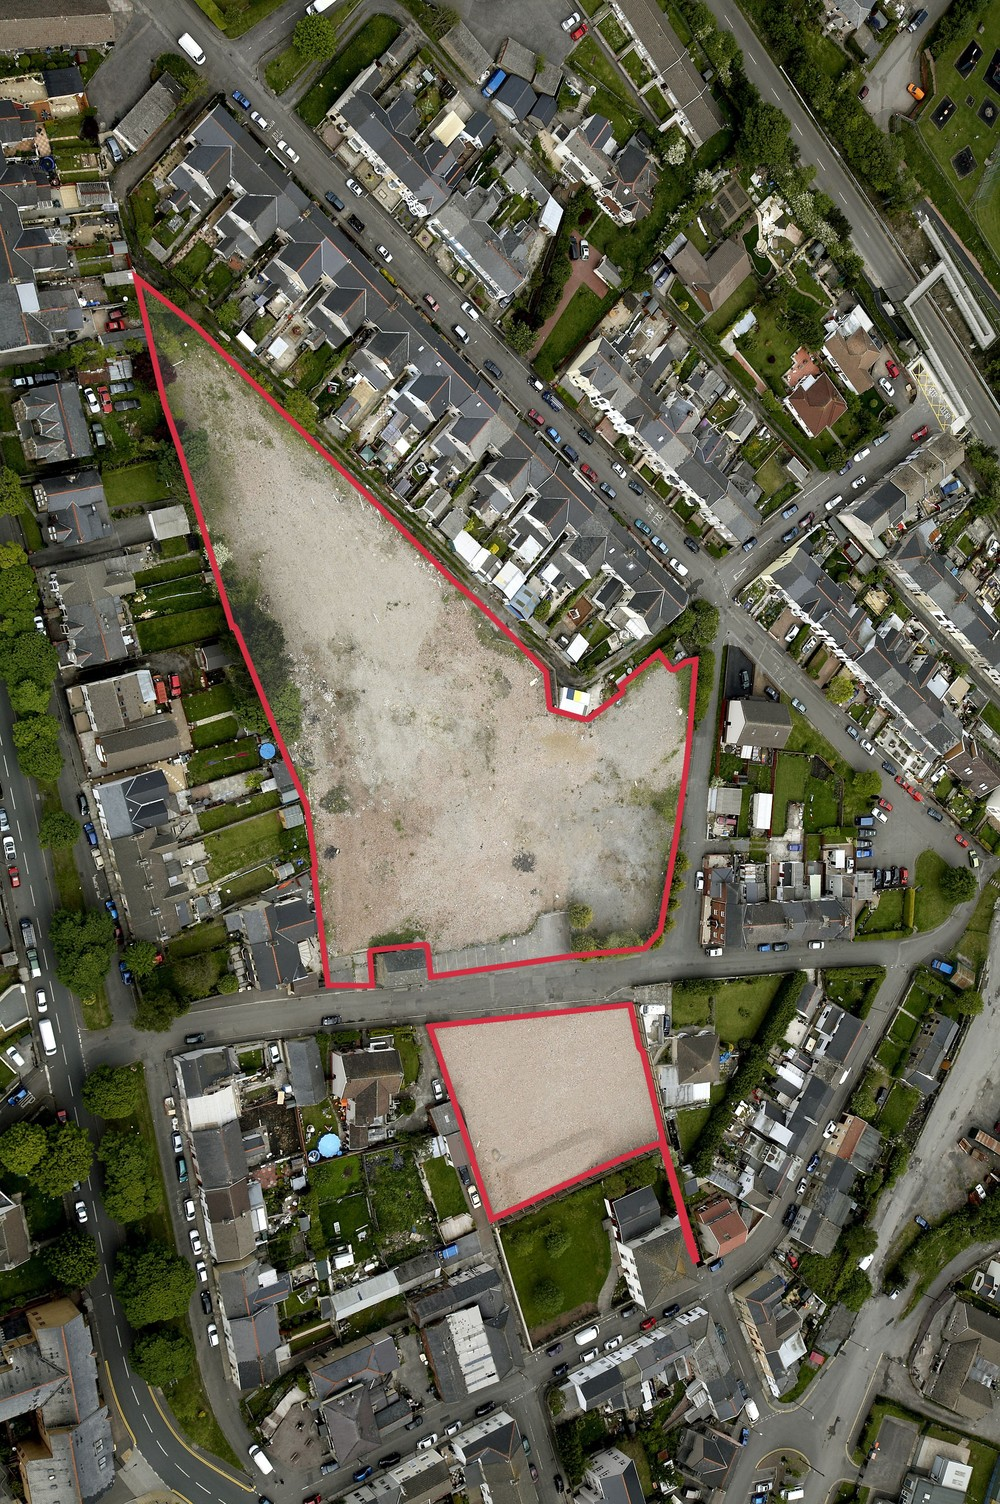 The Factory Road development site in context.